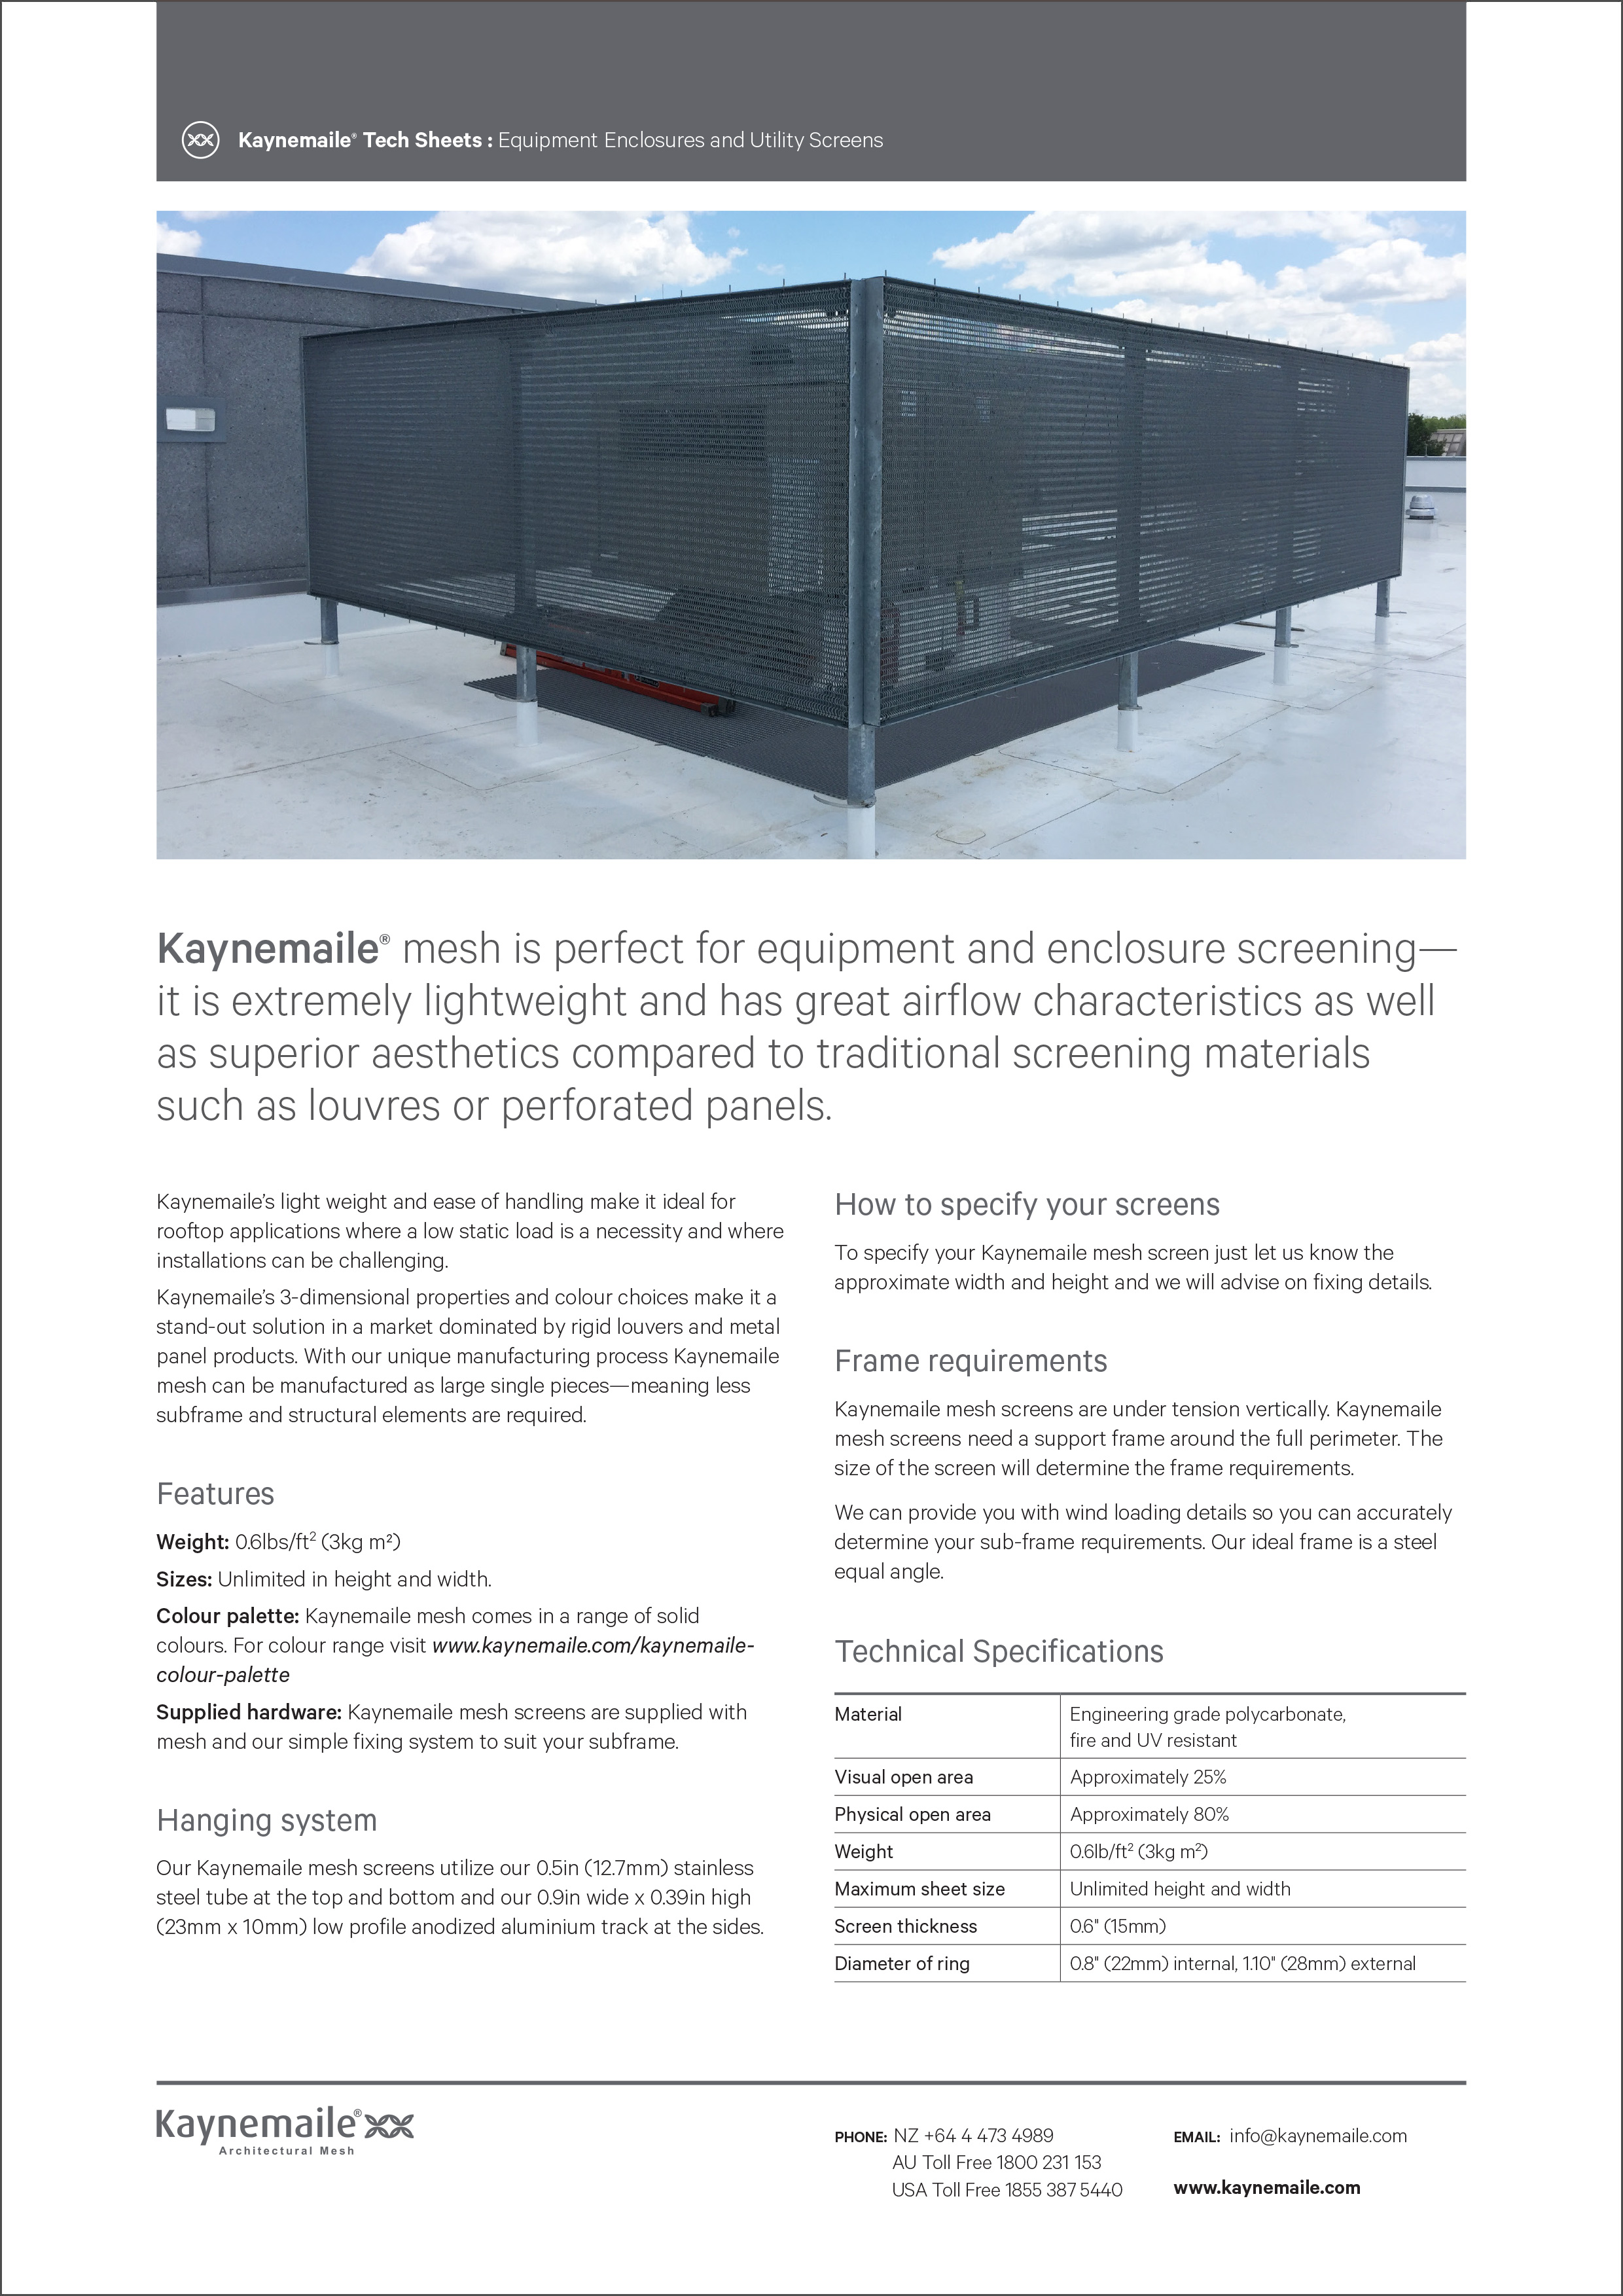 Kaynemaile Equipment Enclosures and Utility Screens     Download →